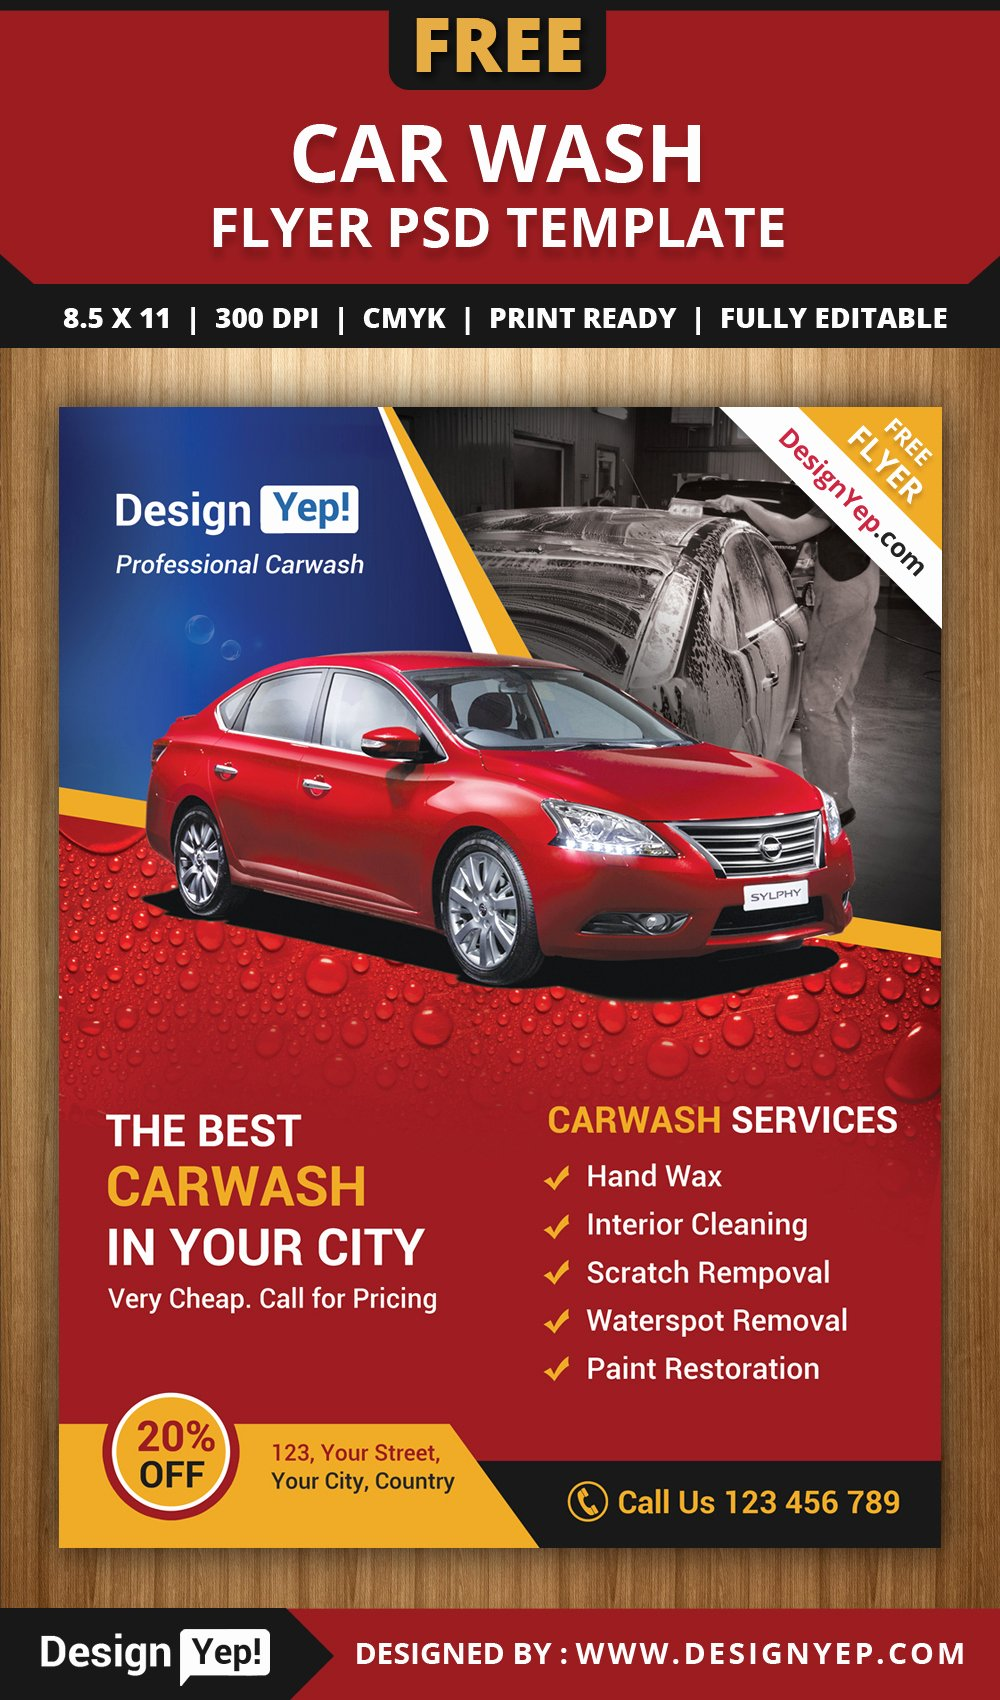 Auto Detailing Flyer Template Lovely Free Car Wash Flyer Psd Template Designyep